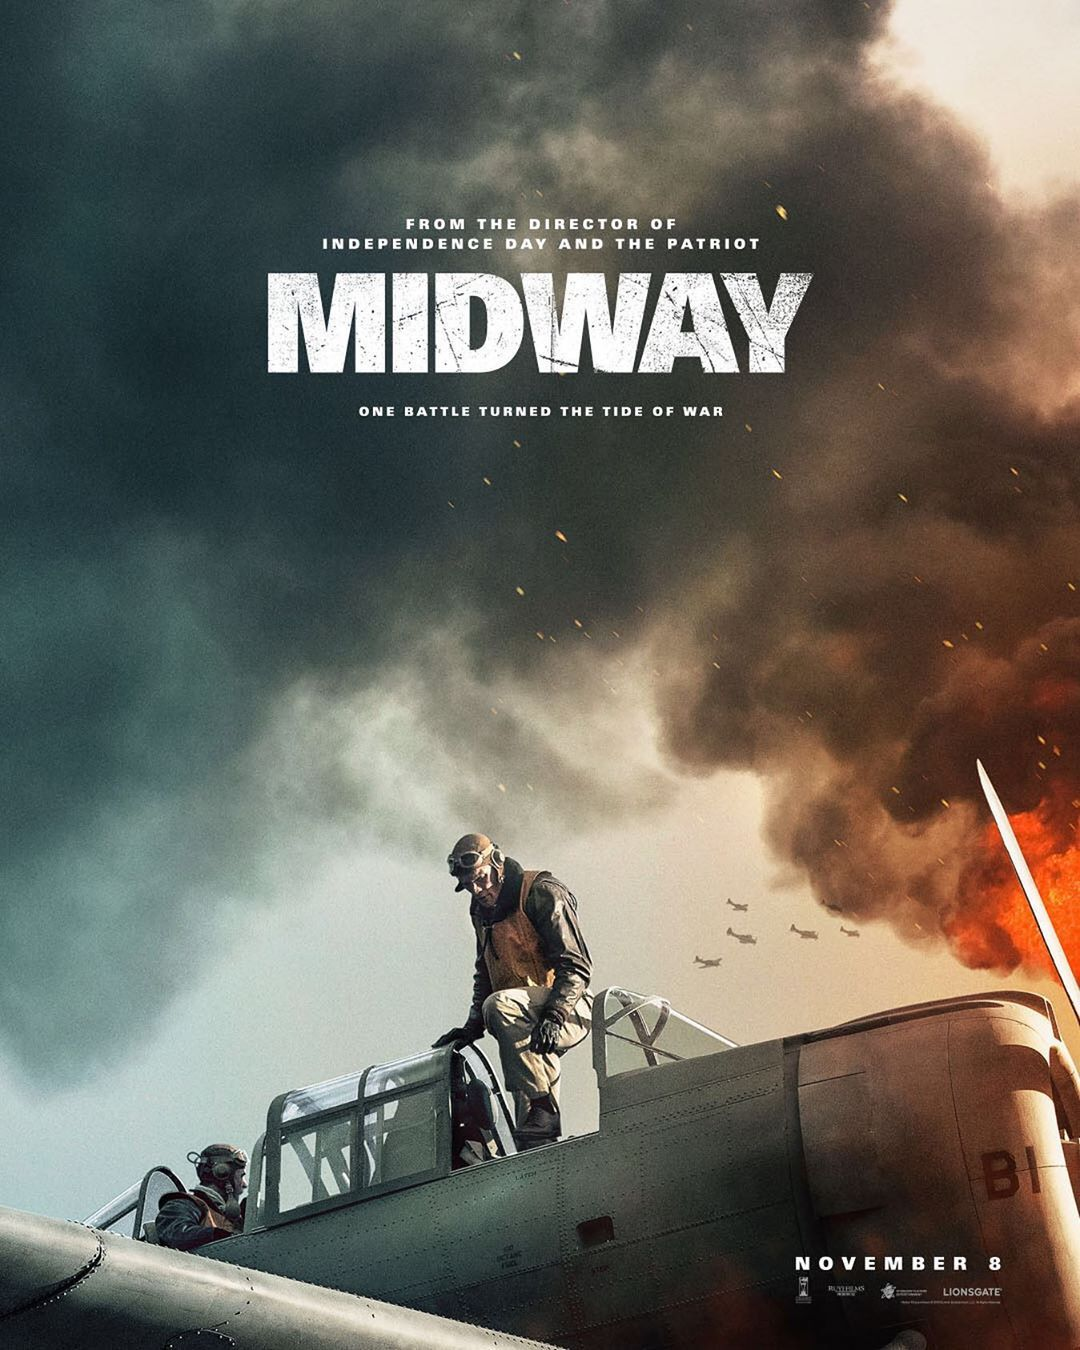 Midway Movie On Instagram One Battle Turned The Tide Of War